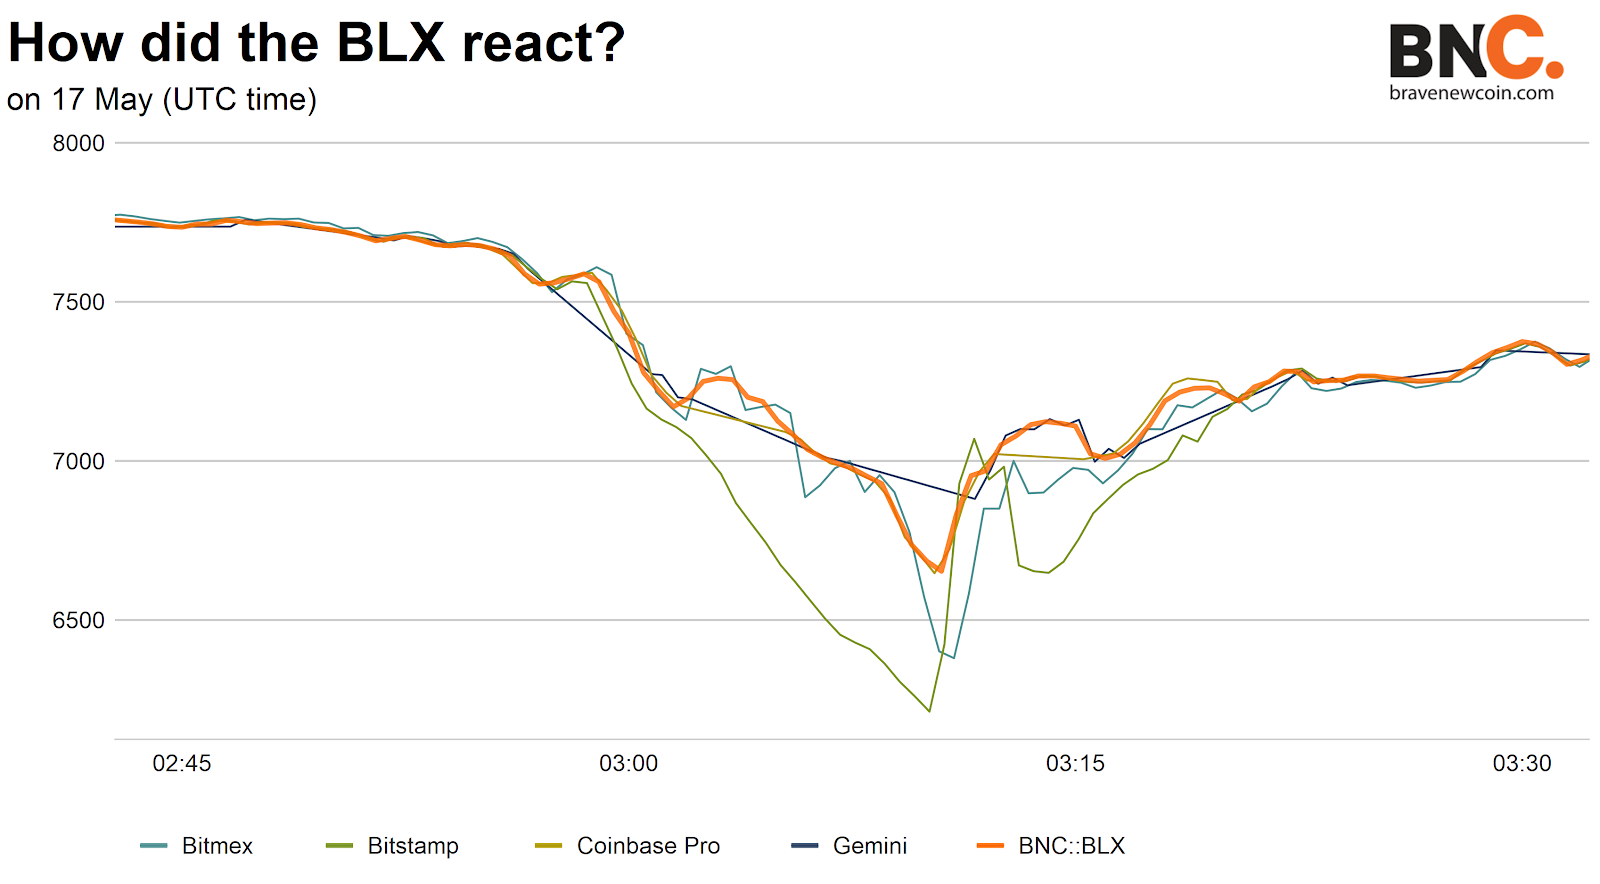 The Bitstamp 'flash crash' - why robust indices matter » Brave New Coin